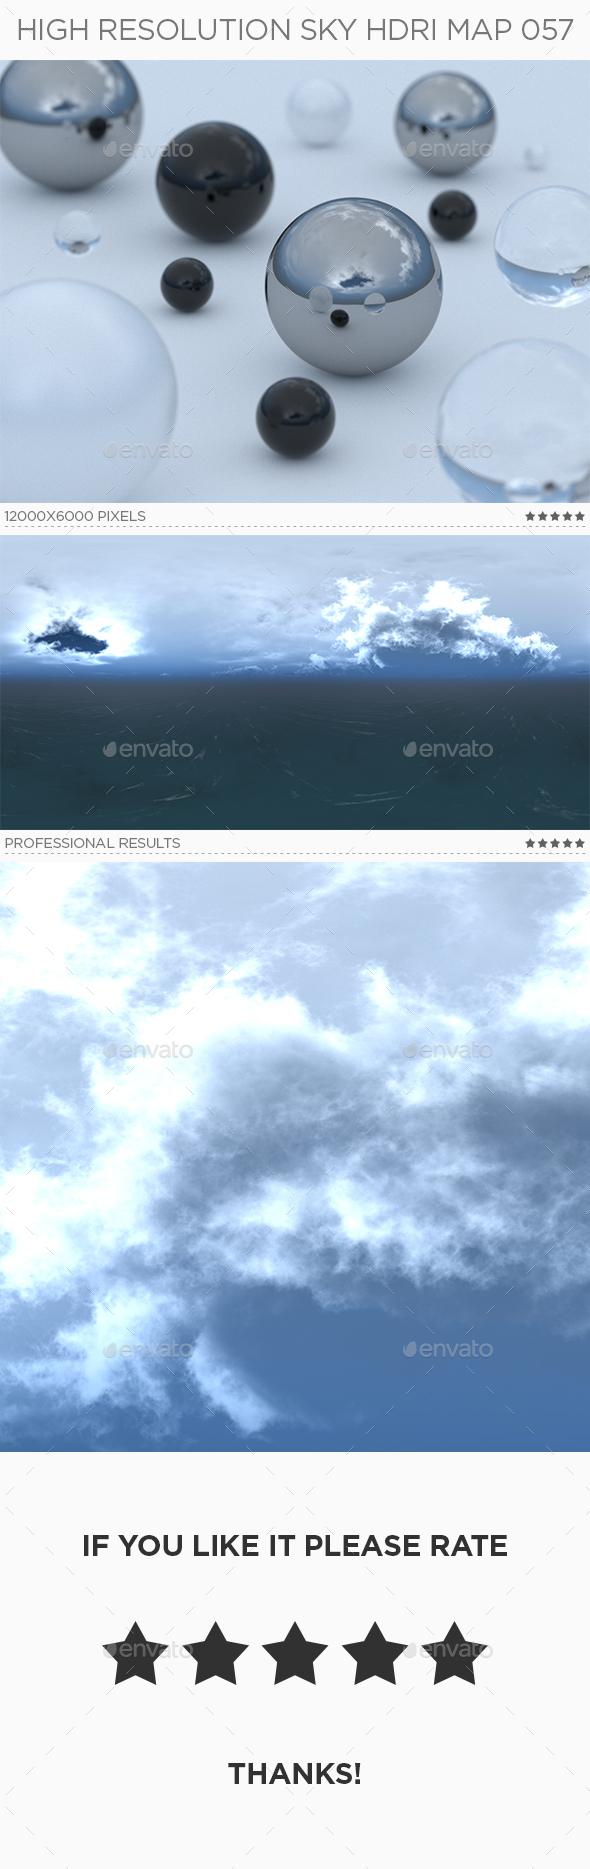 High Resolution Sky HDRi Map 057 - 3DOcean Item for Sale